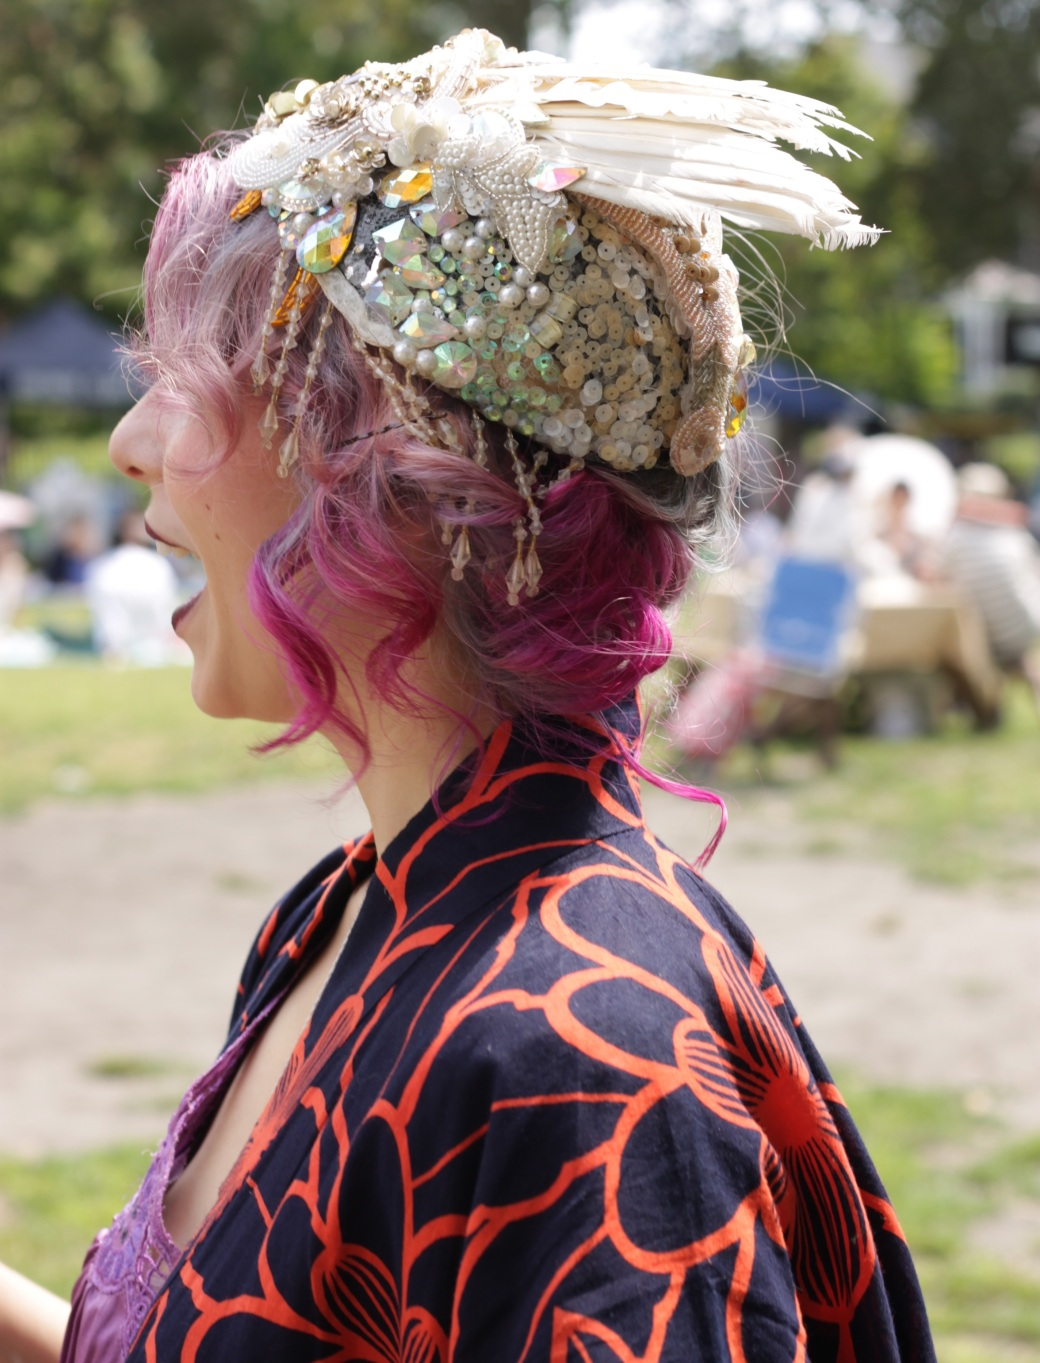 new york city governors island jazz age lawn party august 17 2014 10